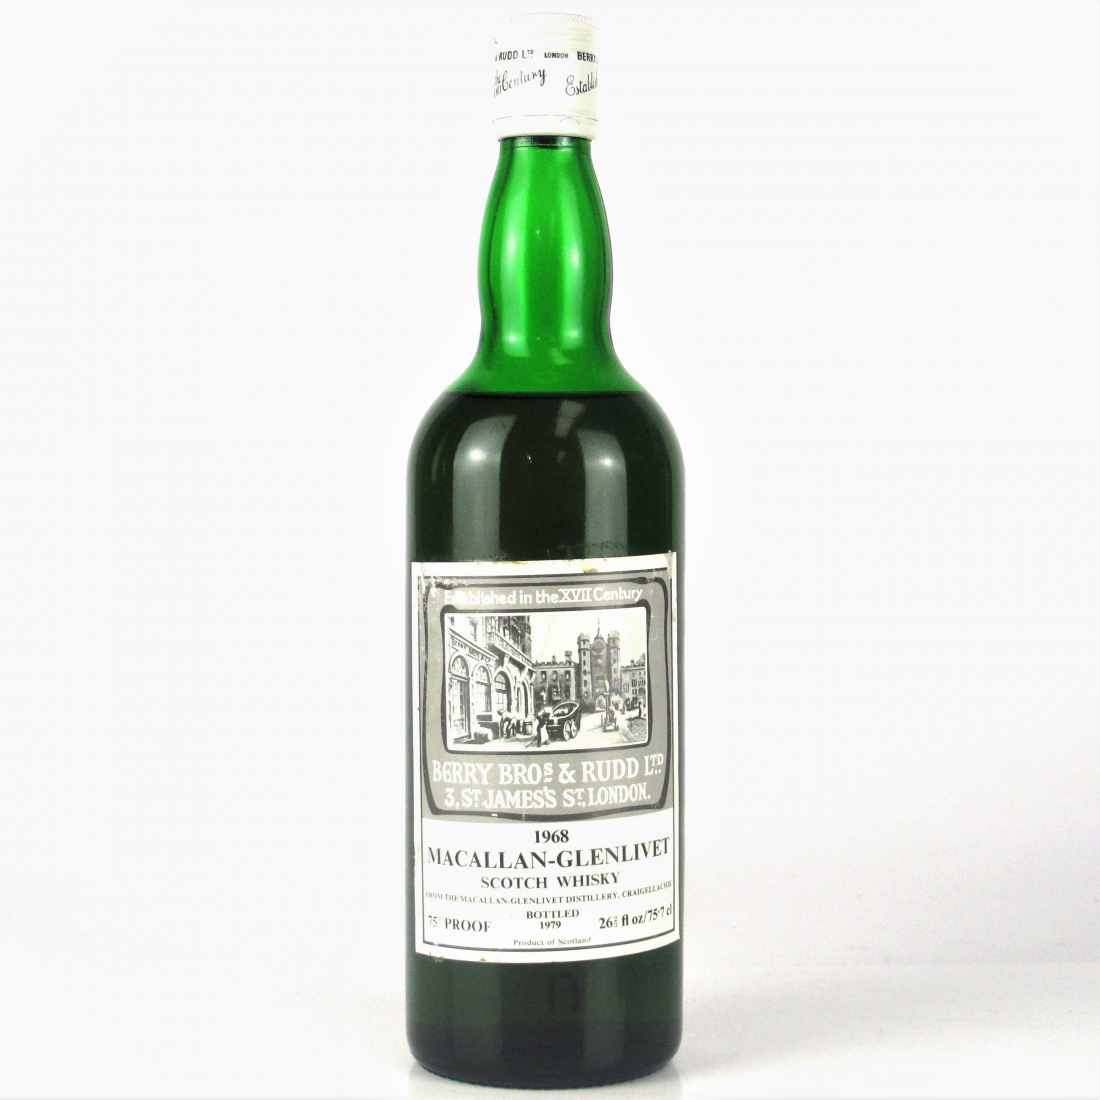 Macallan 1968 Berry Brothers and Rudd